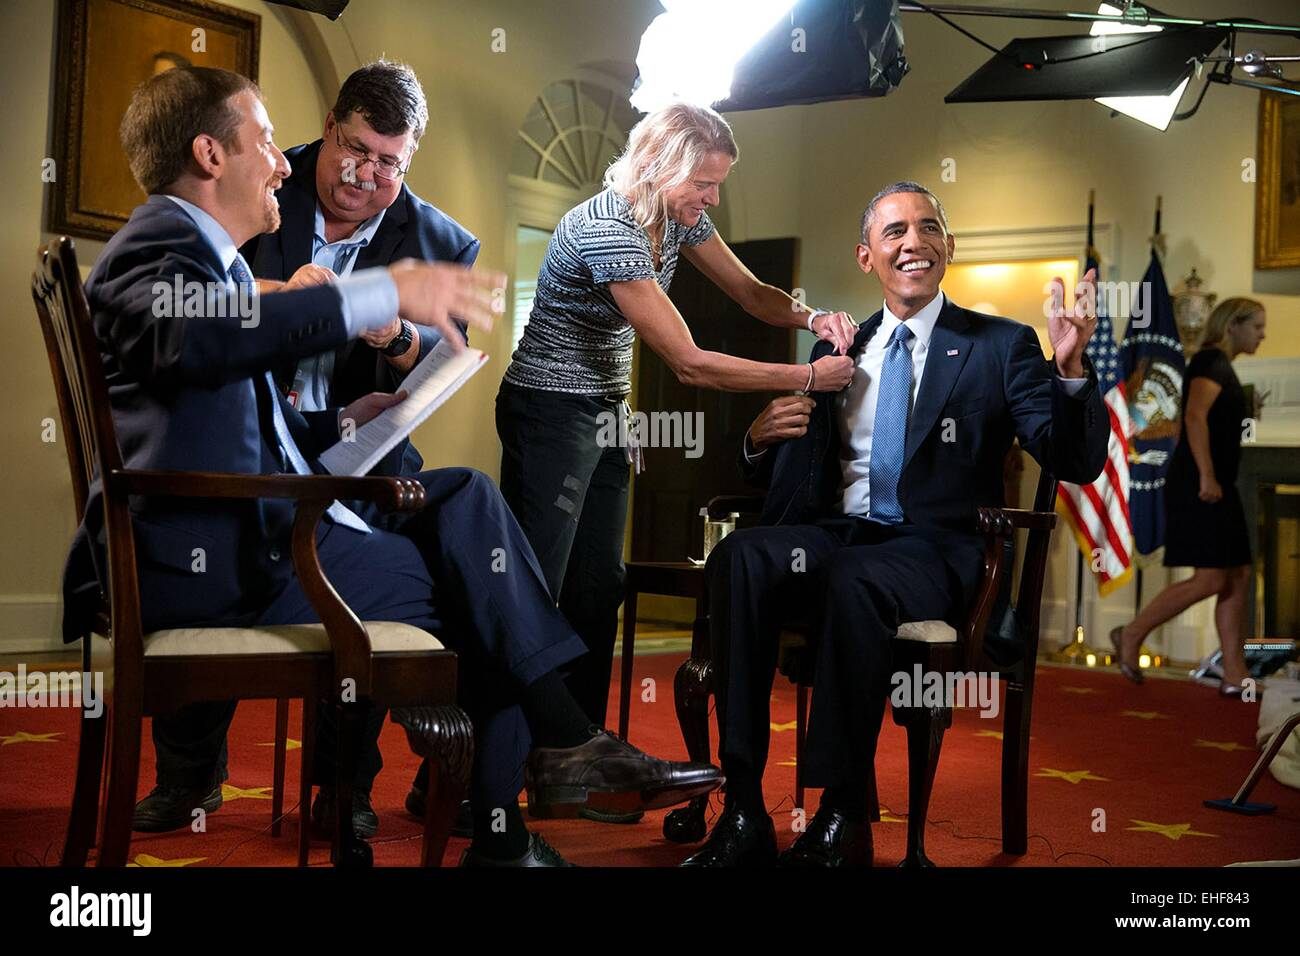 US President Barack Obama laughs as he is miked for an interview with host Chuck Todd of NBC's 'Meet The - Stock Image